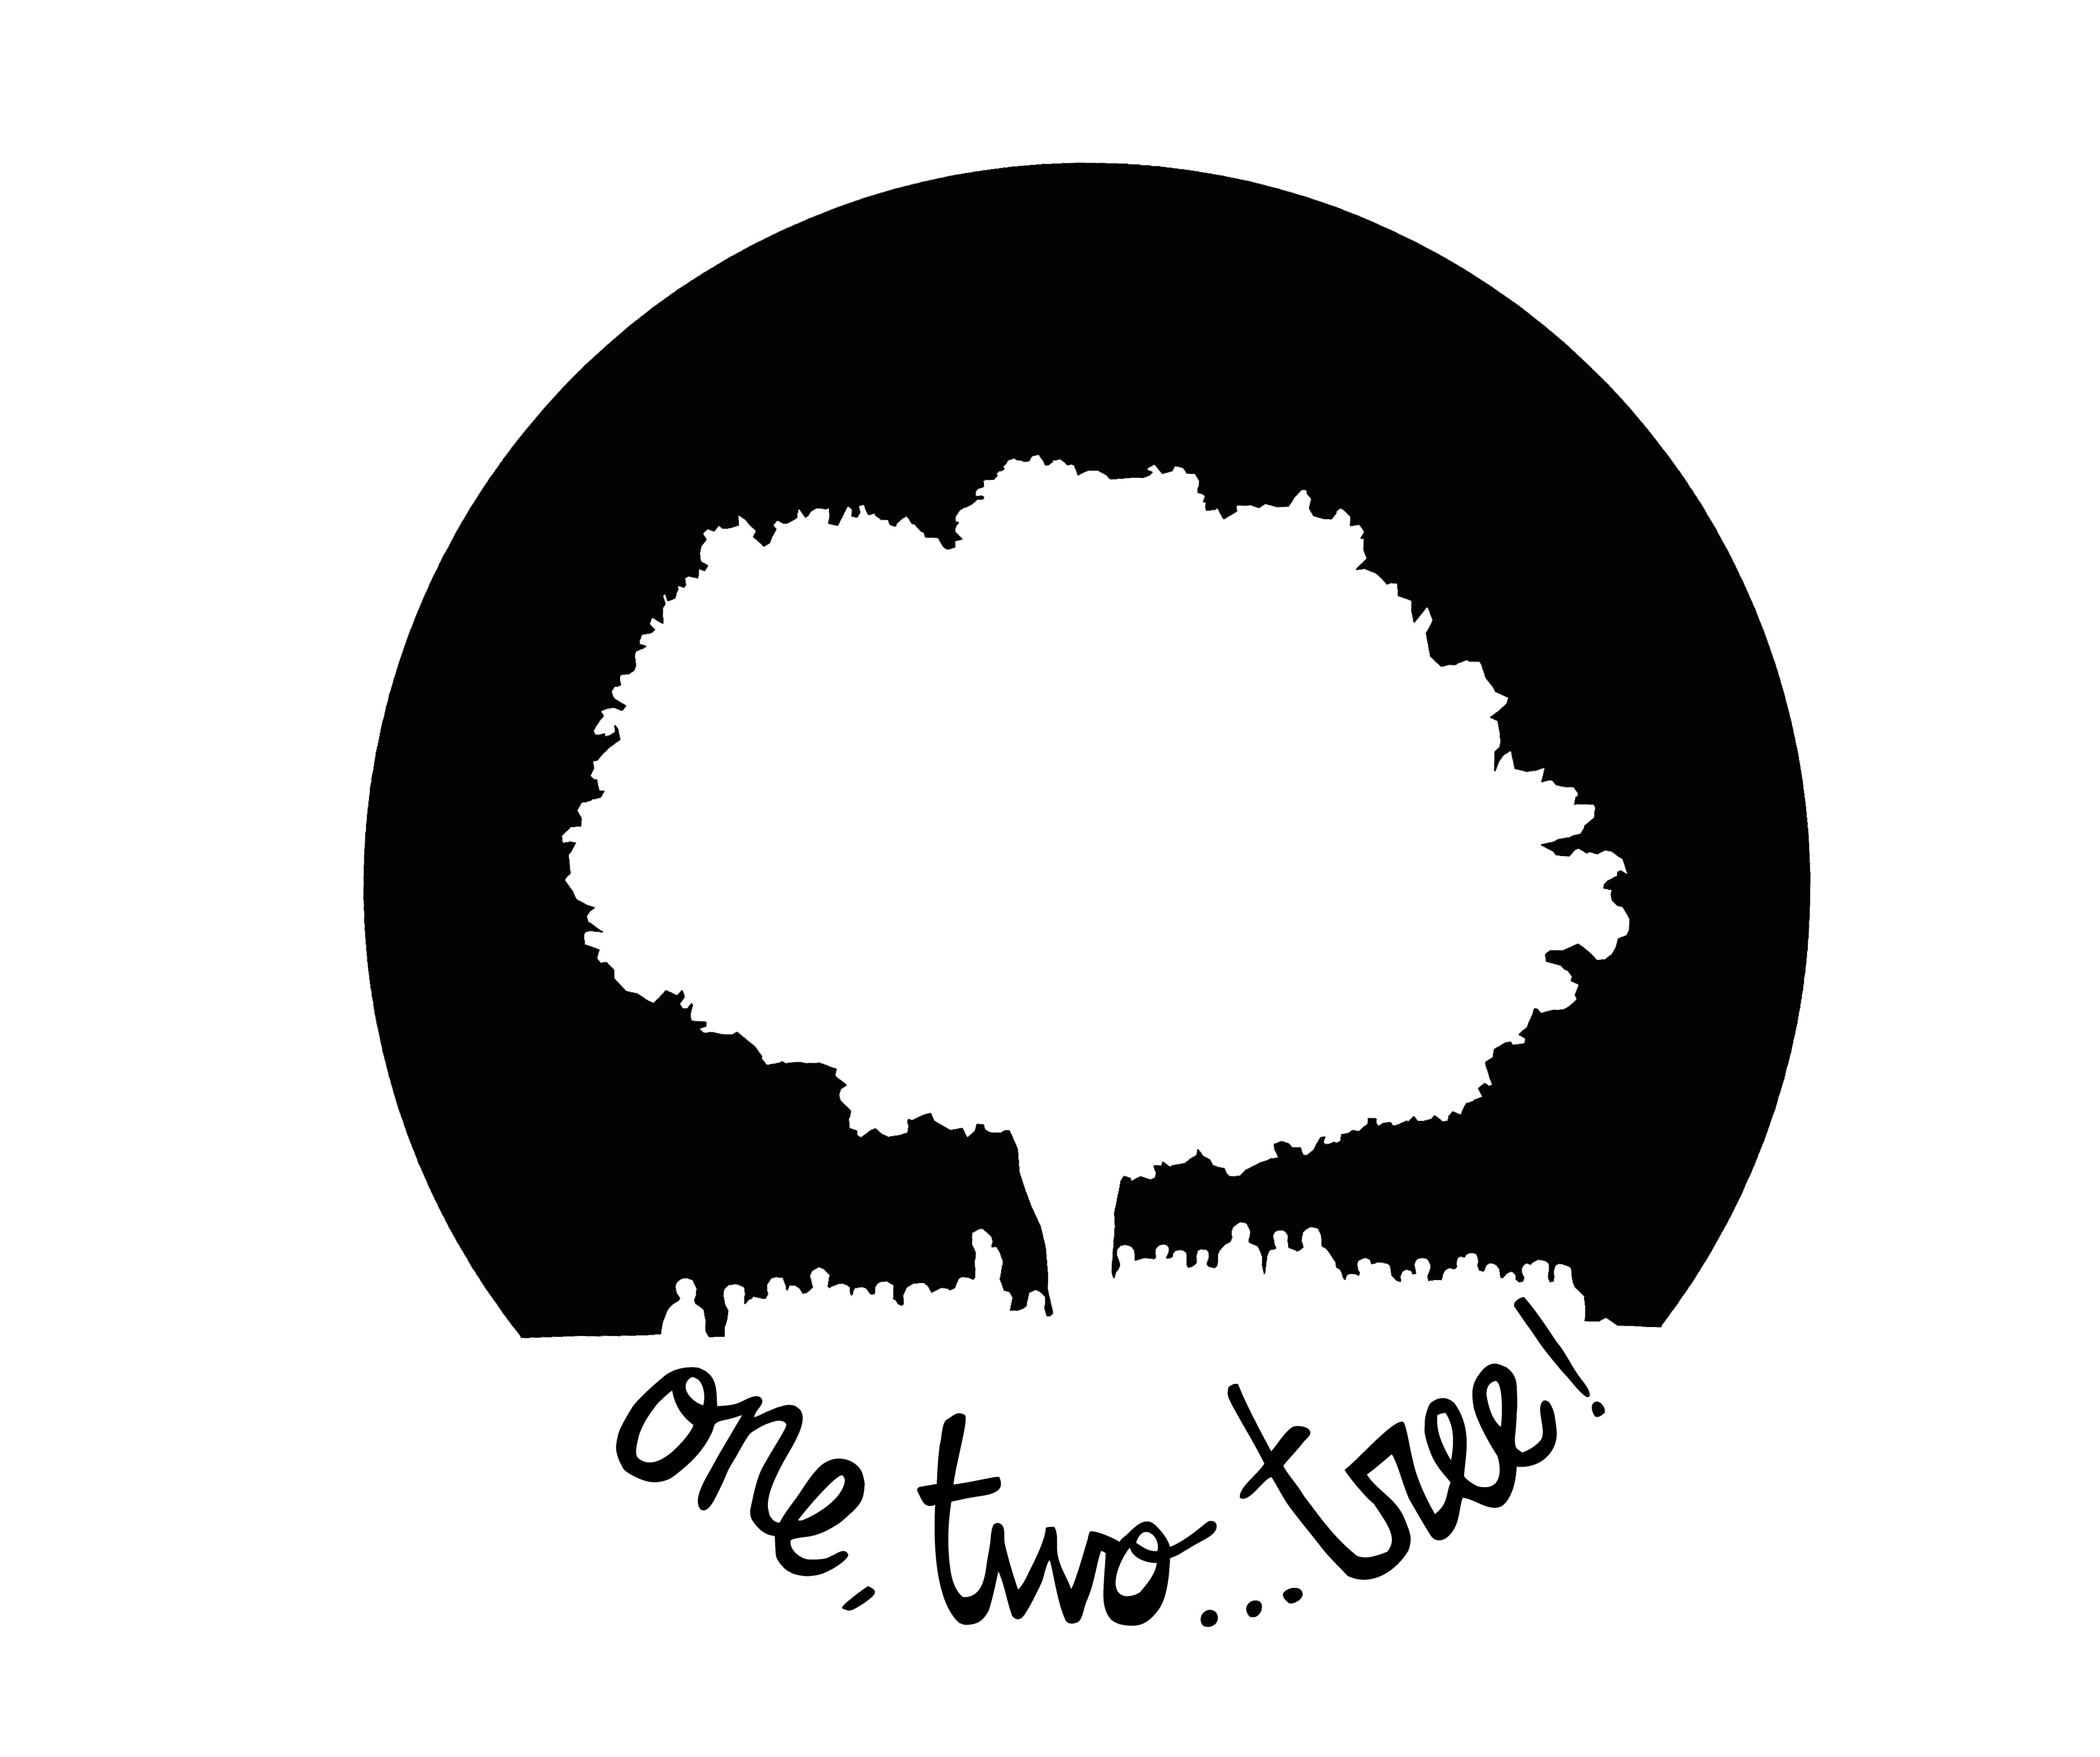 Logo of One, two...tree!